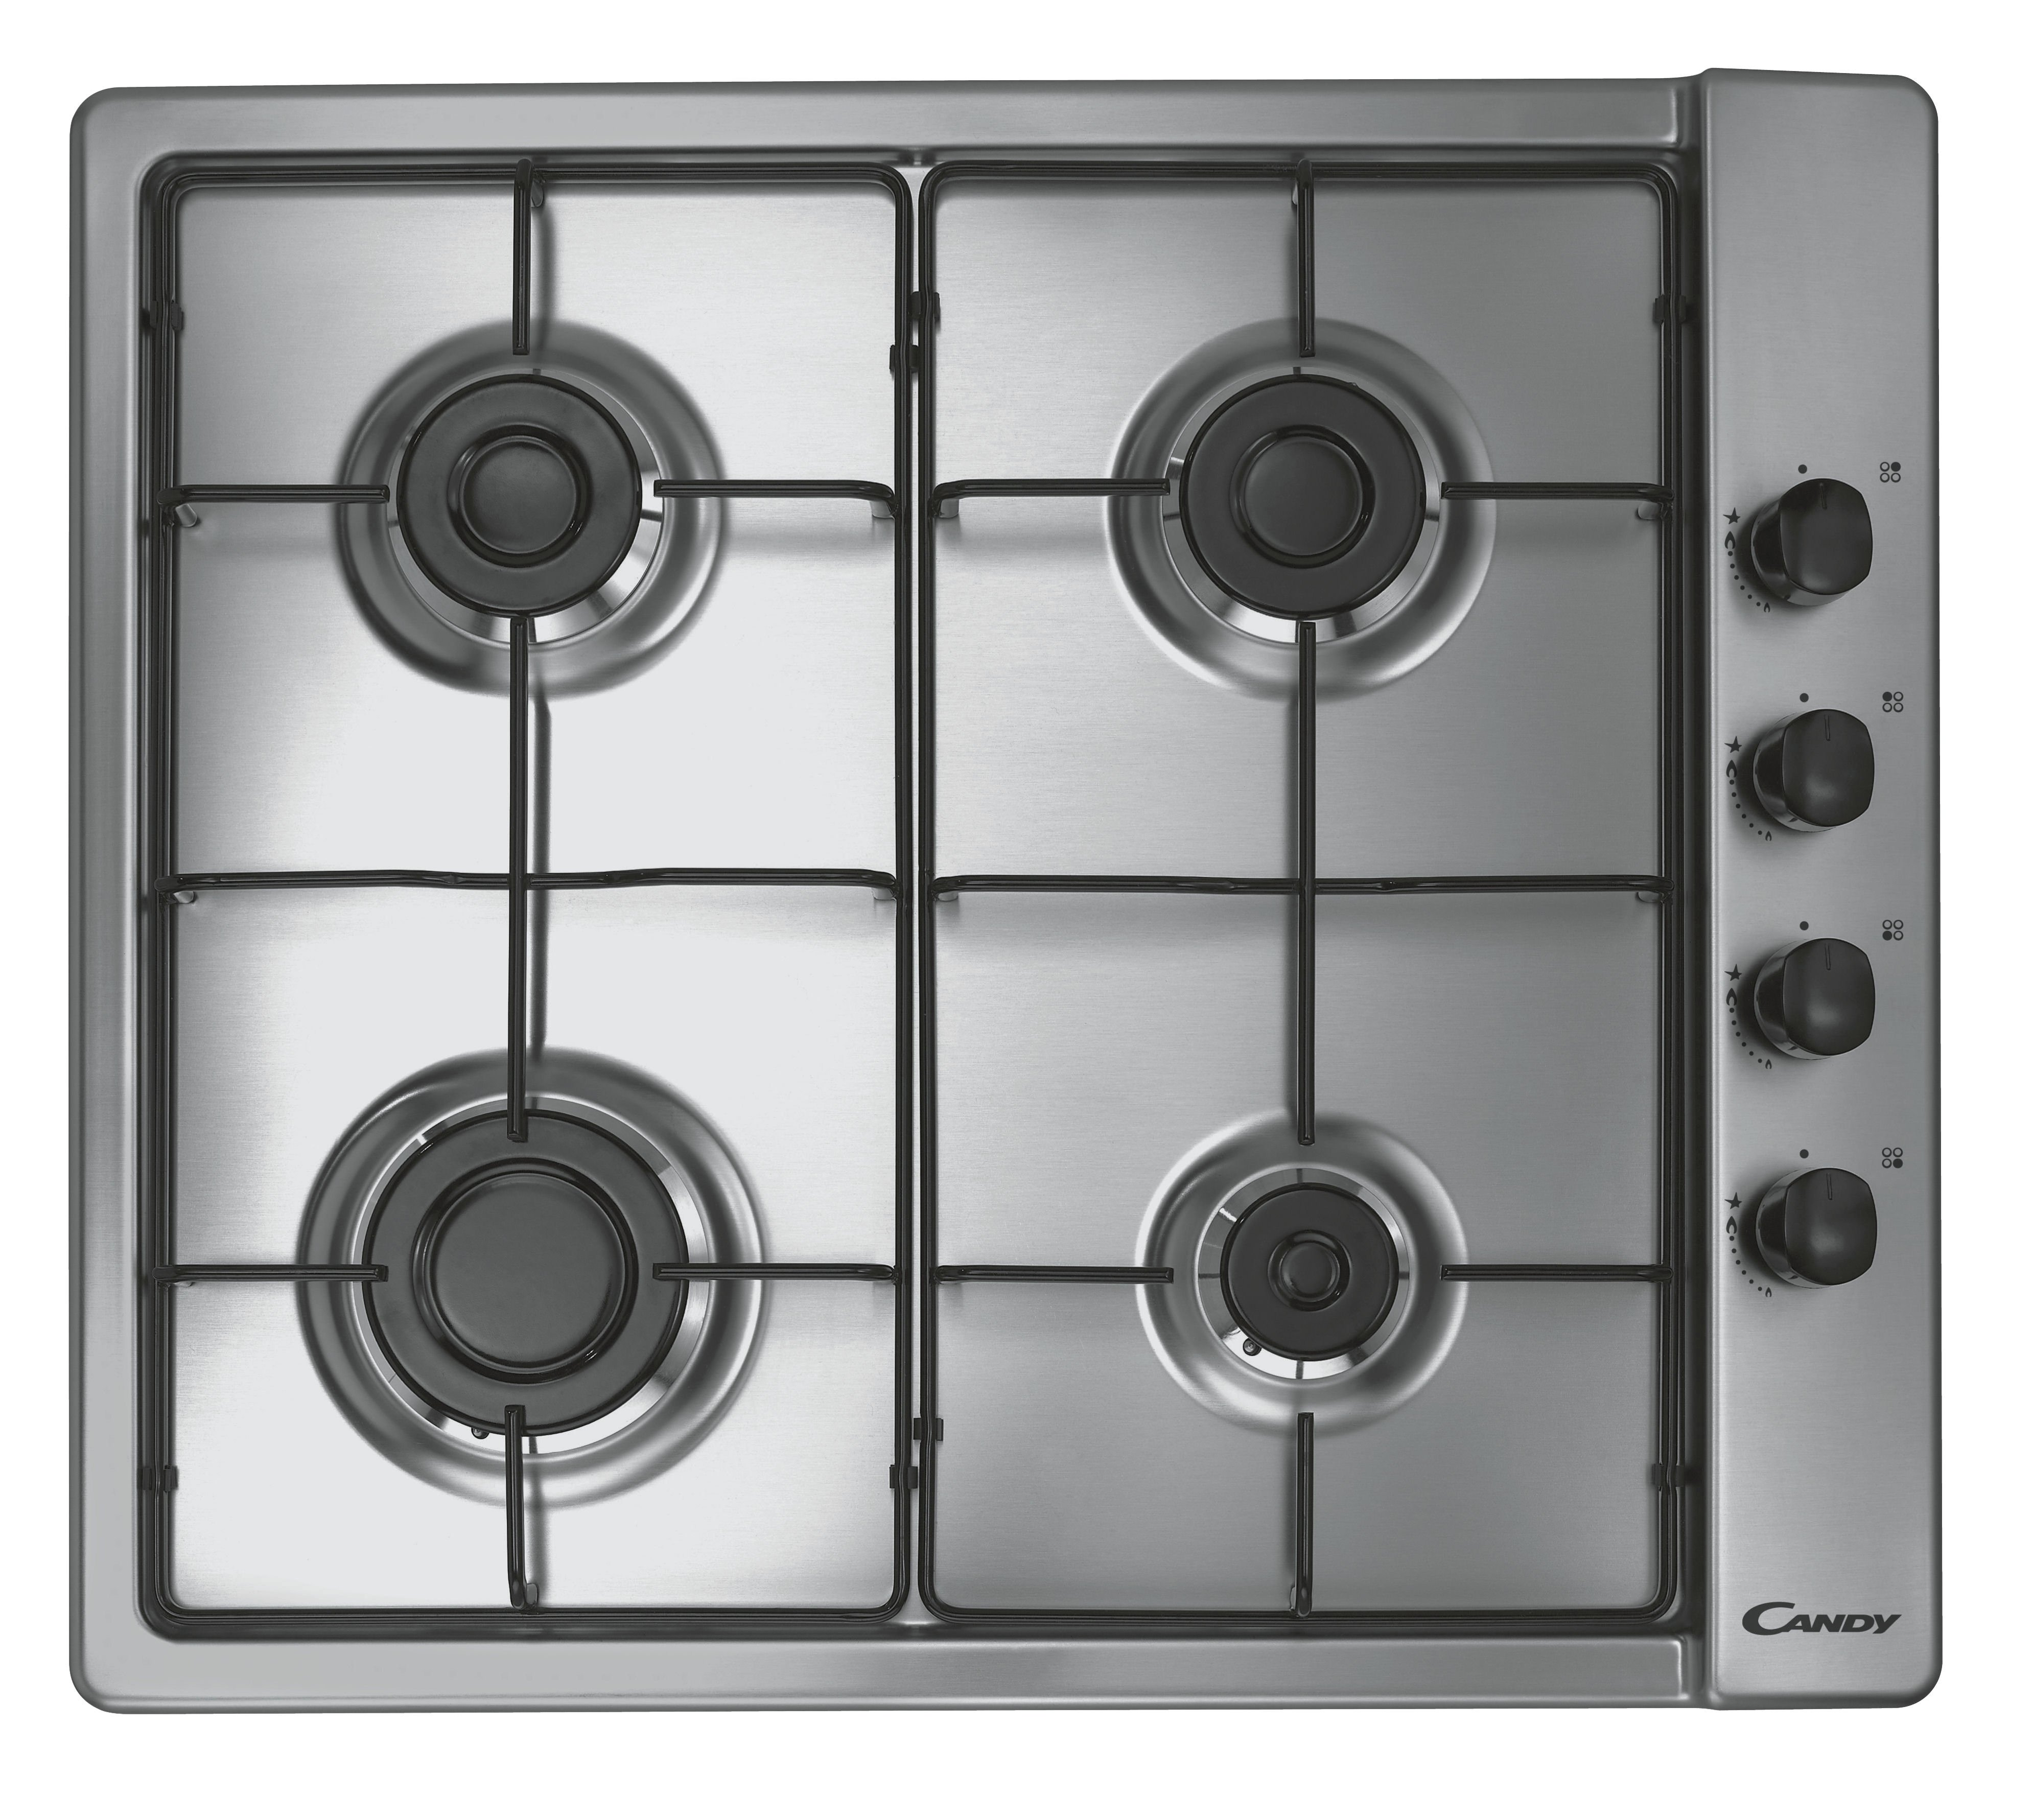 Candy ACOM609XM/CLG64SPX Multifunction Oven and Gas Hob Pack